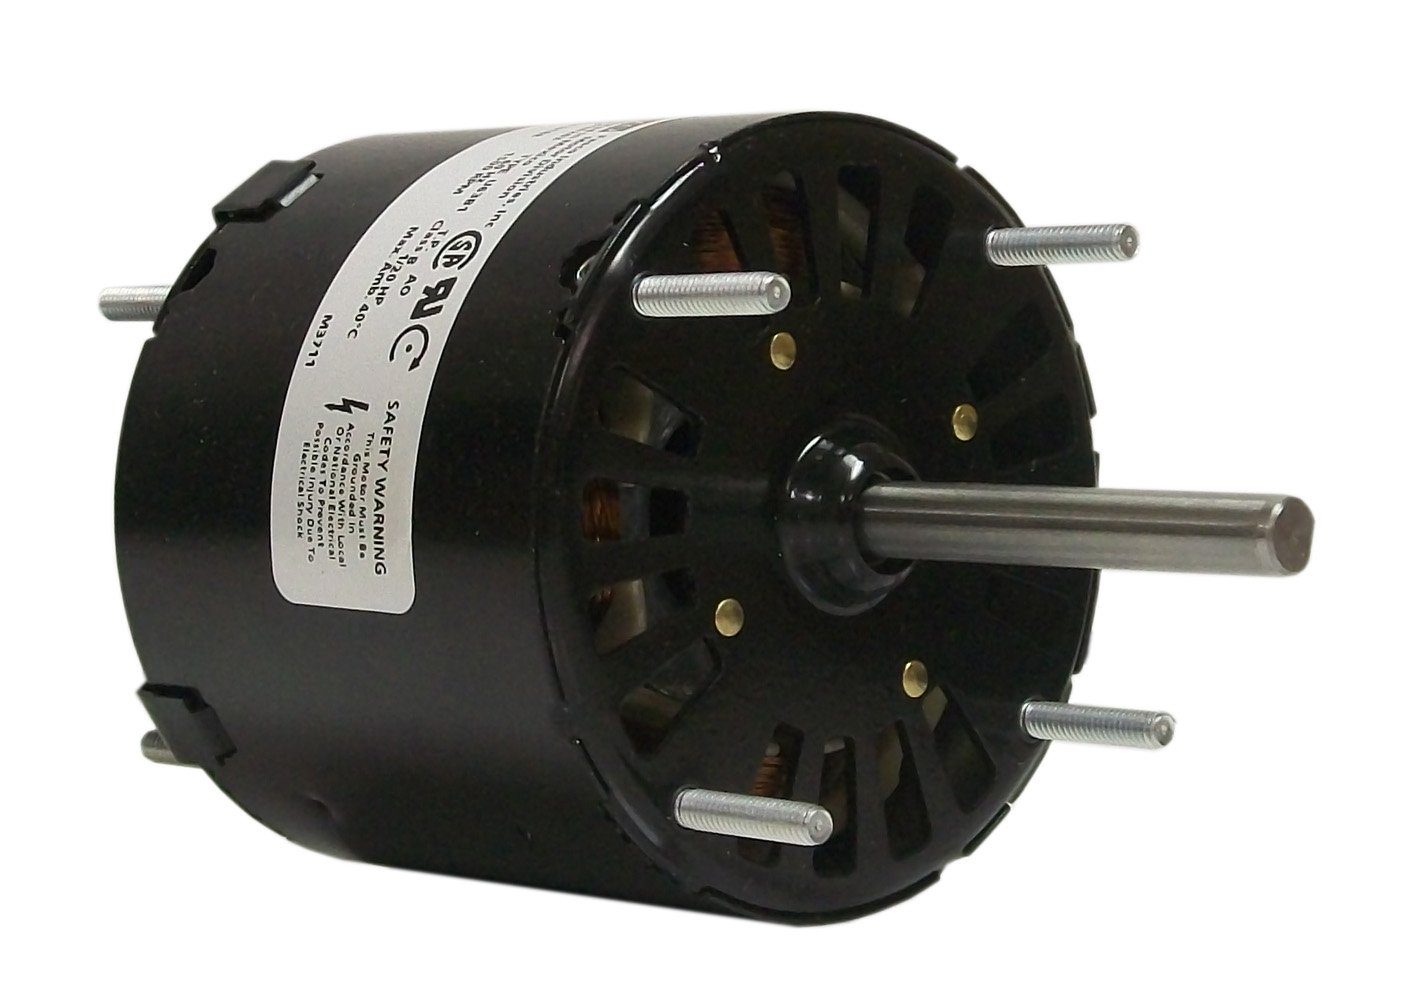 Fasco D133 3.3-Inch General Purpose Motor, 1/20 HP, 115 Volts, 1500 RPM, 1 Speed, 1.8 Amps, OAO Enclosure, CCWSE Rotation, Sleeve Bearing